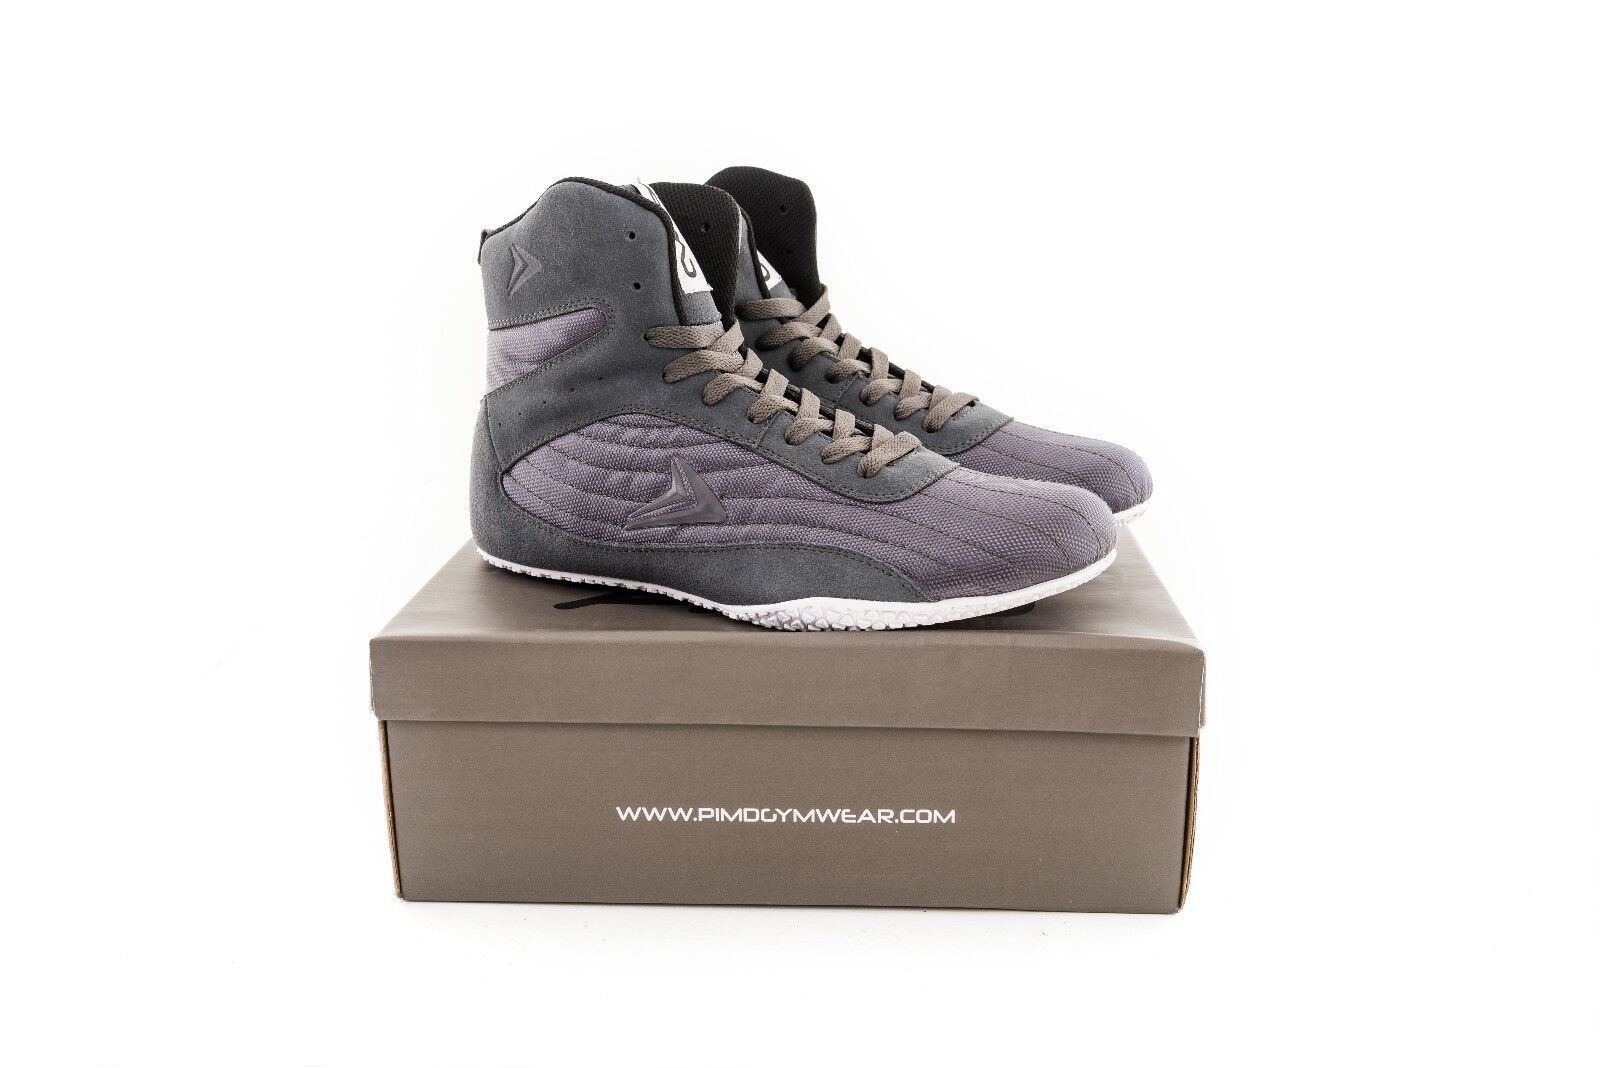 PIMD Grey X-Core V2 Gym Boots - Hightop shoes Weight Lifting Fitness Workout